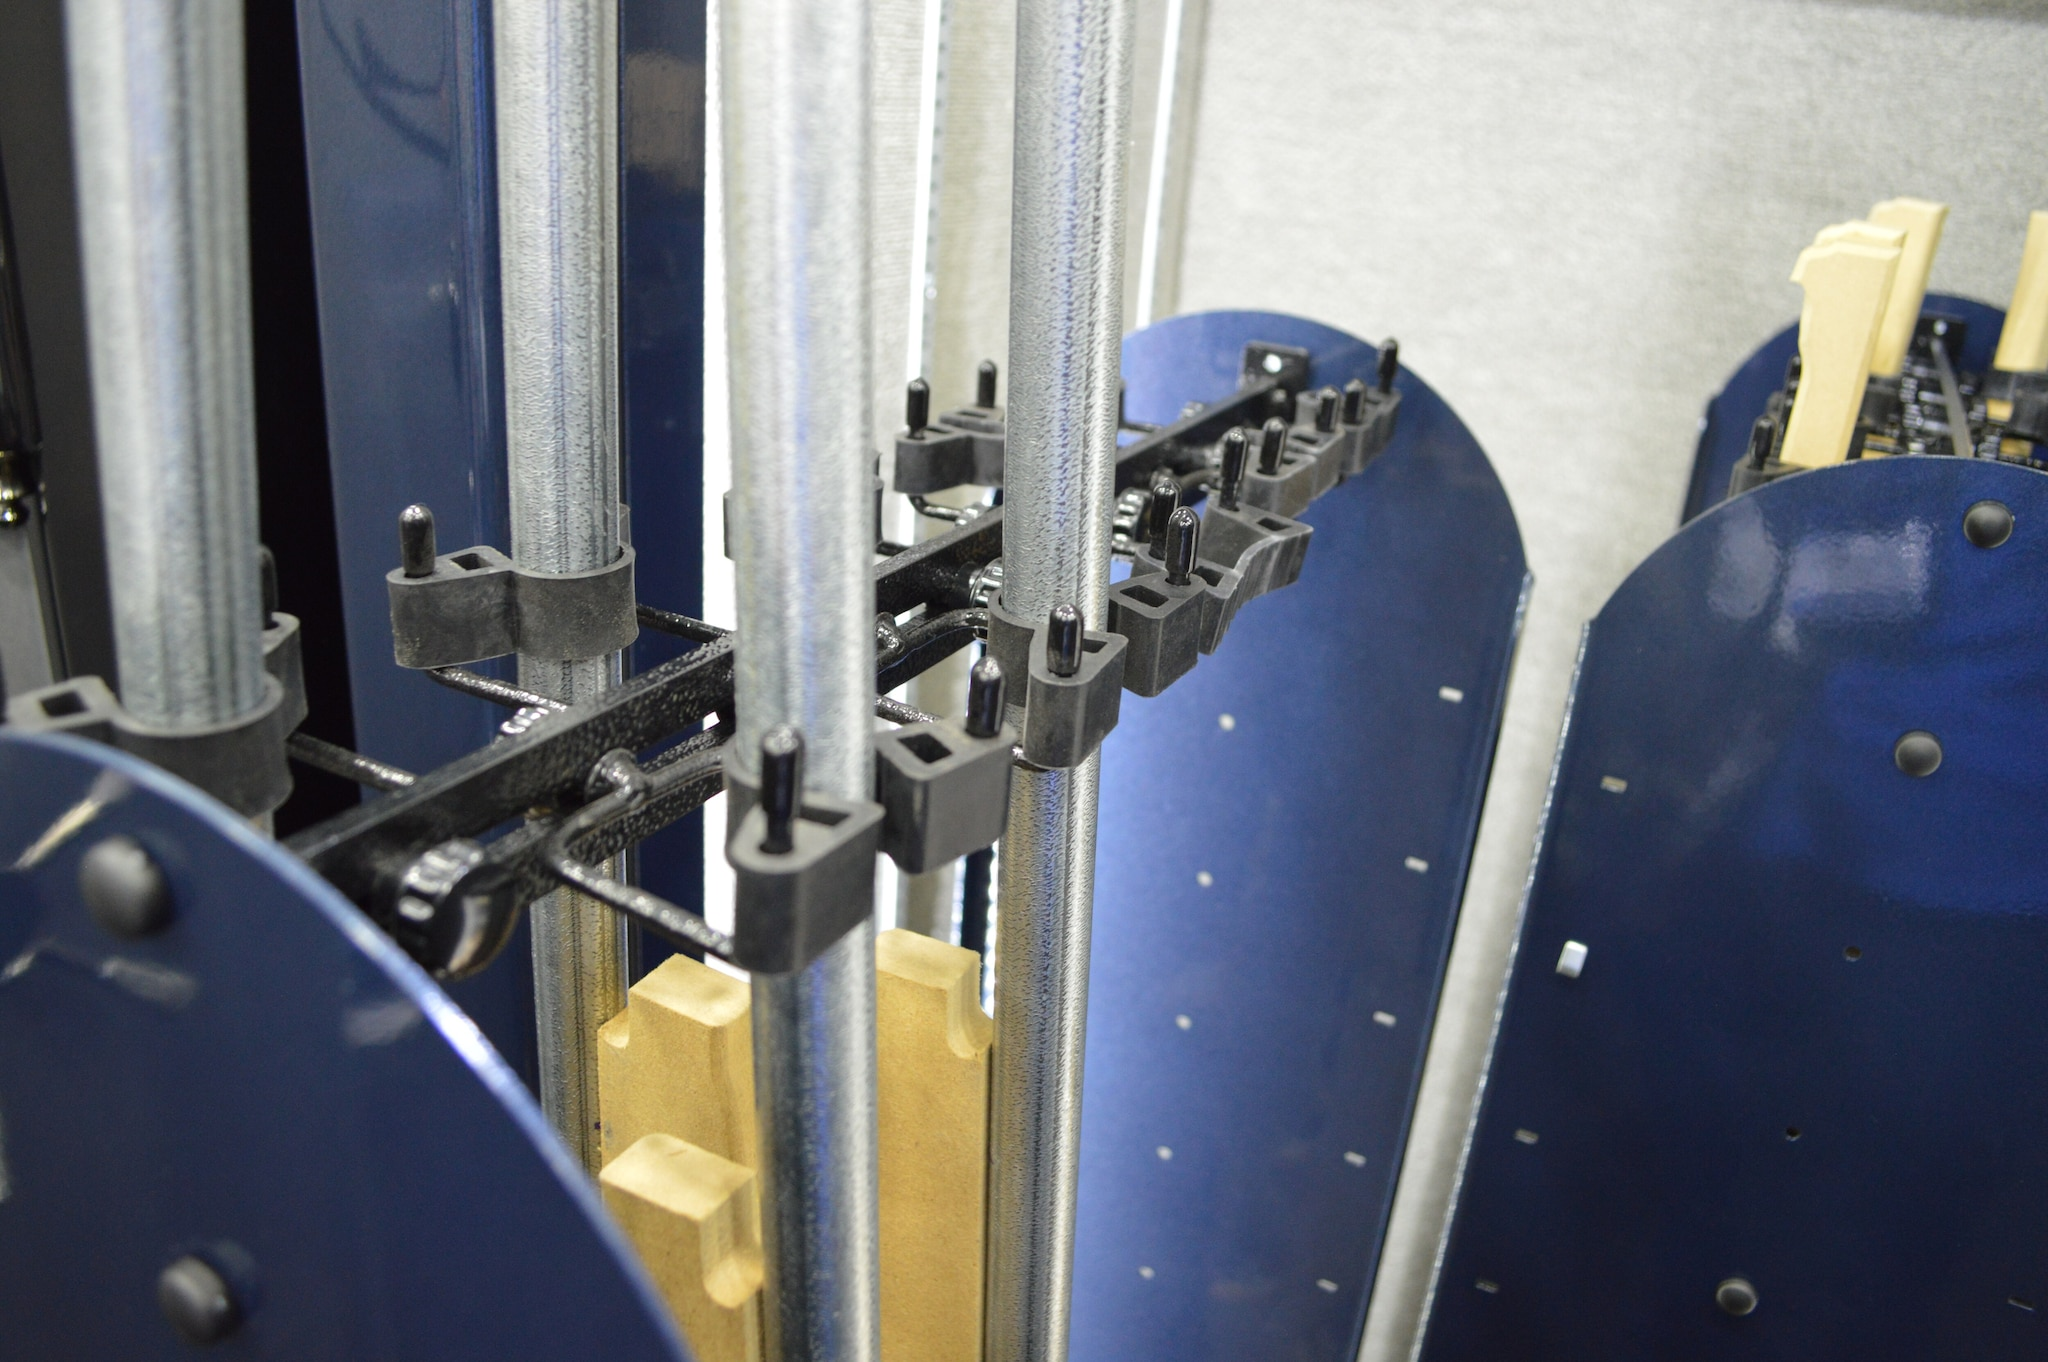 The Vertical Slideout System grips gun barrels in a cushioned but firm hold.